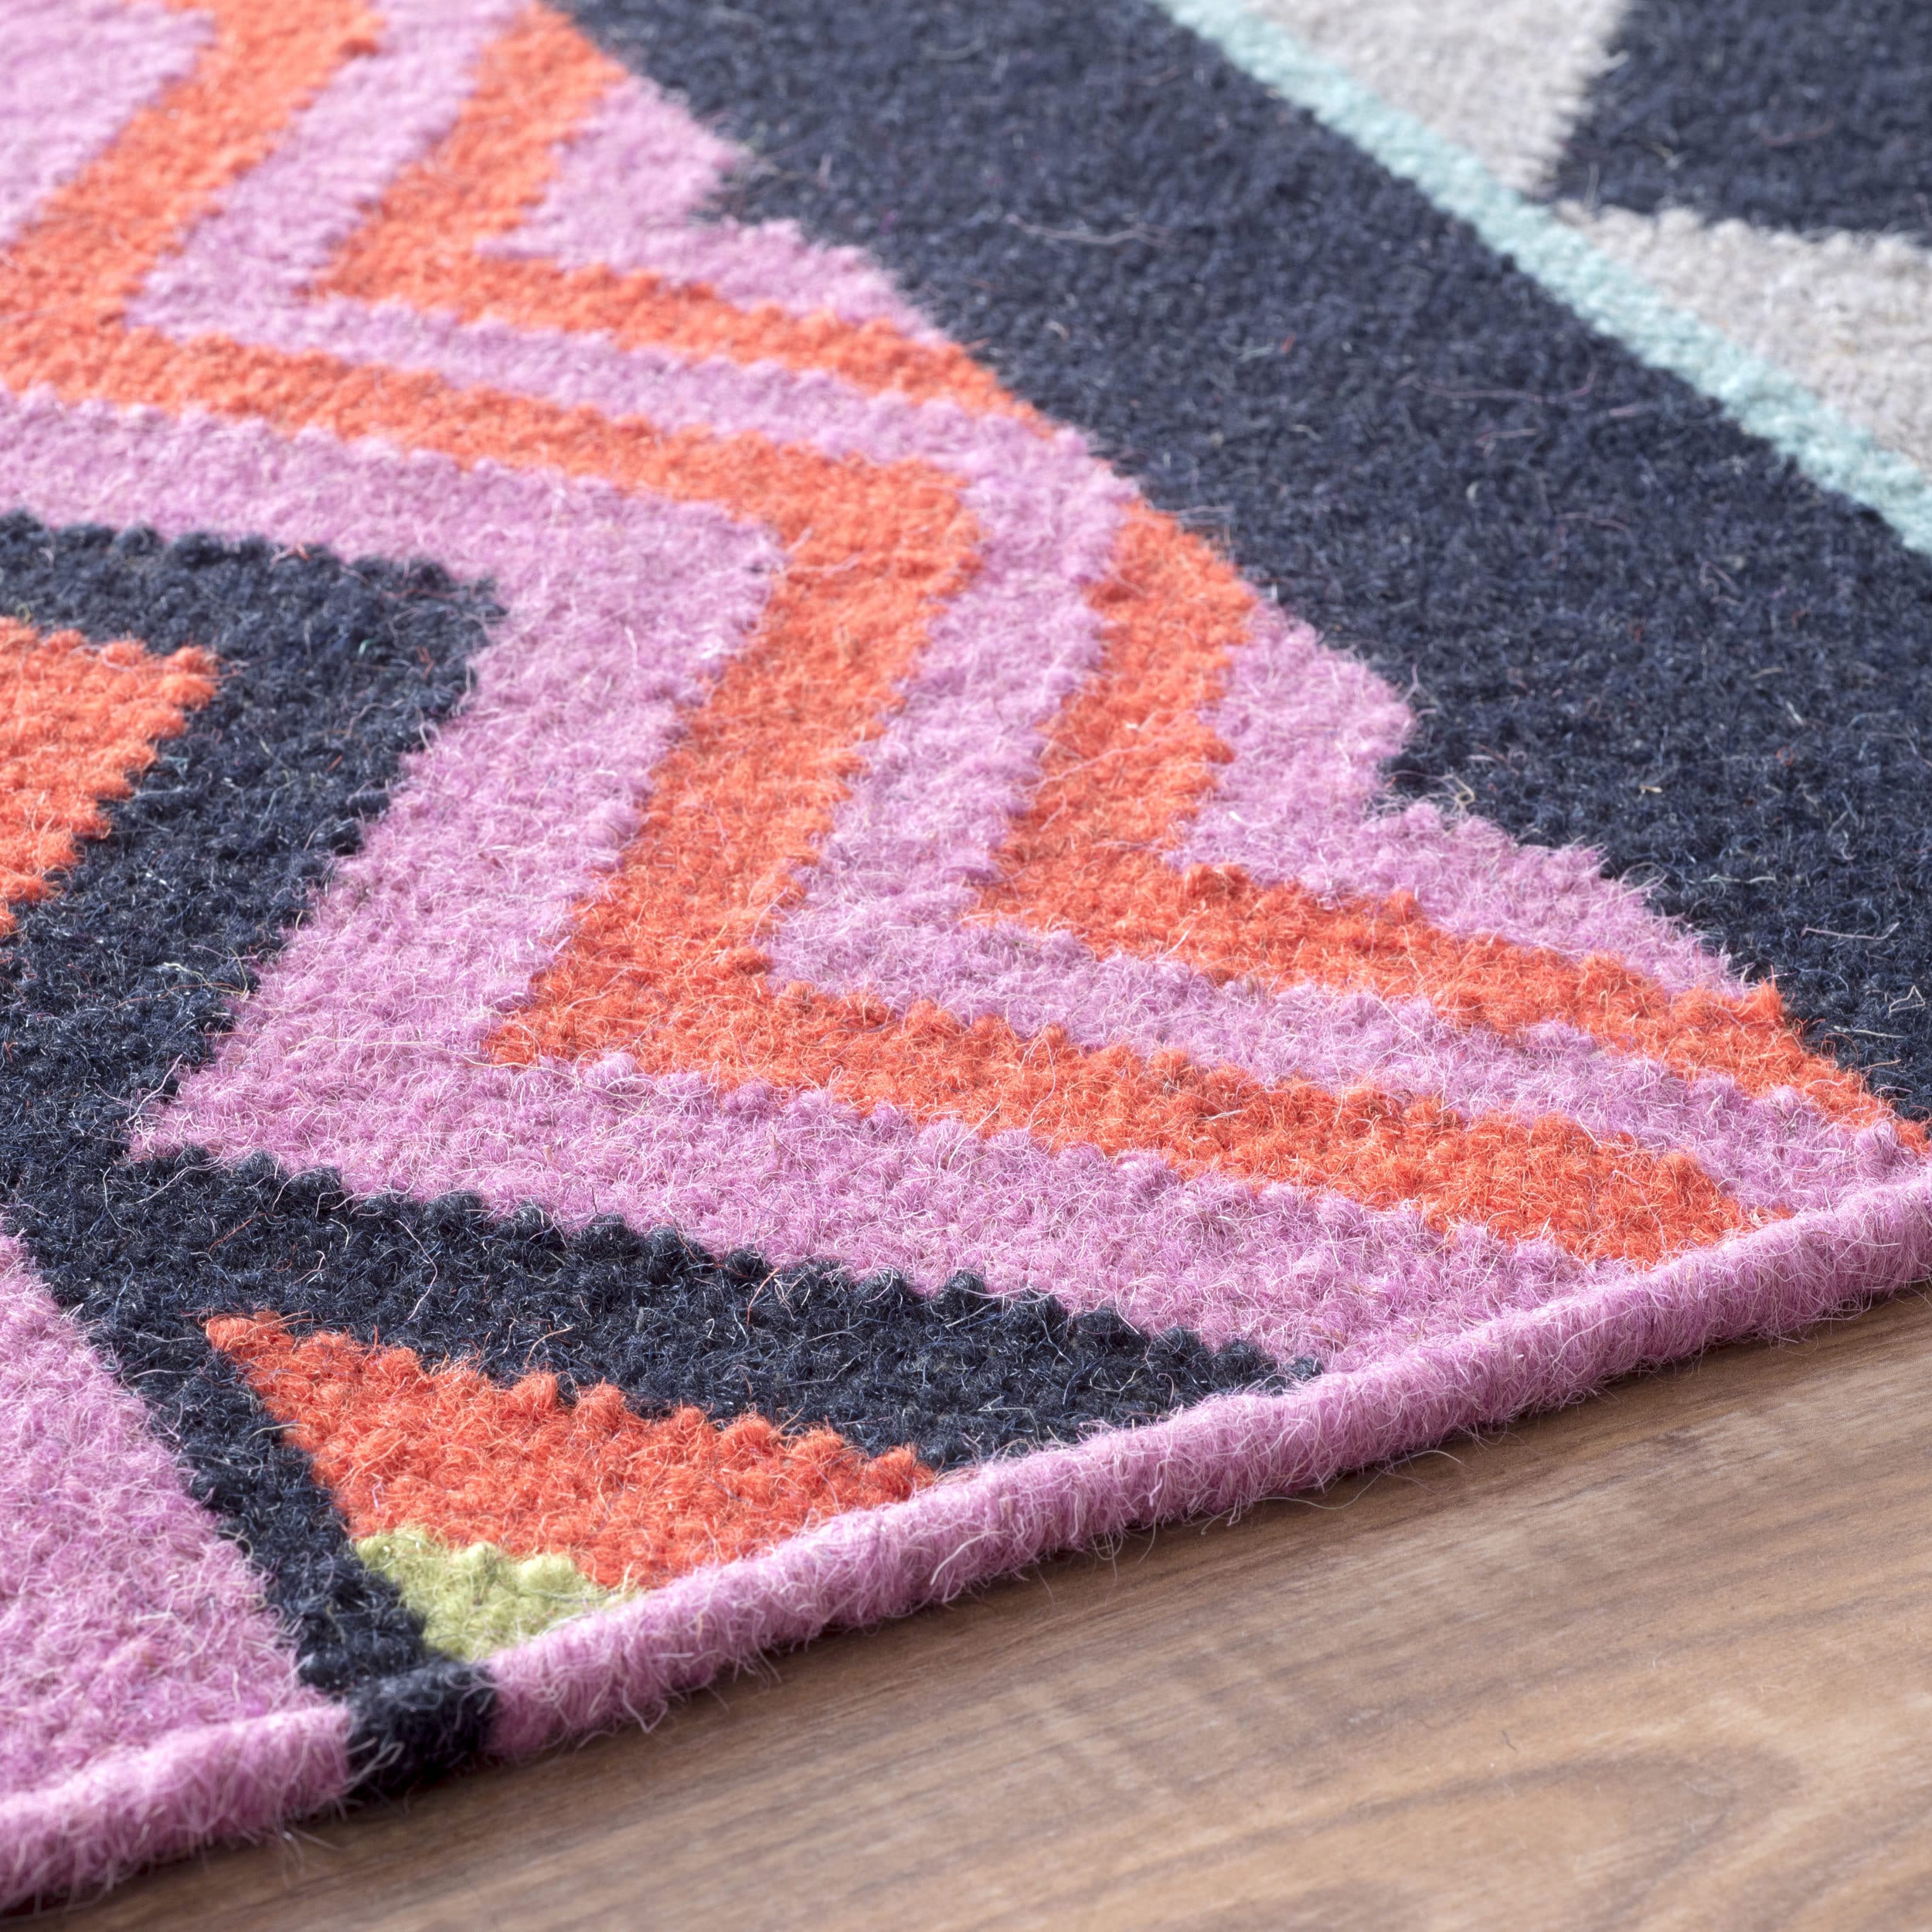 hard area weave random rainbow rug wearing floor multi modern coloured rugs flatweave flat